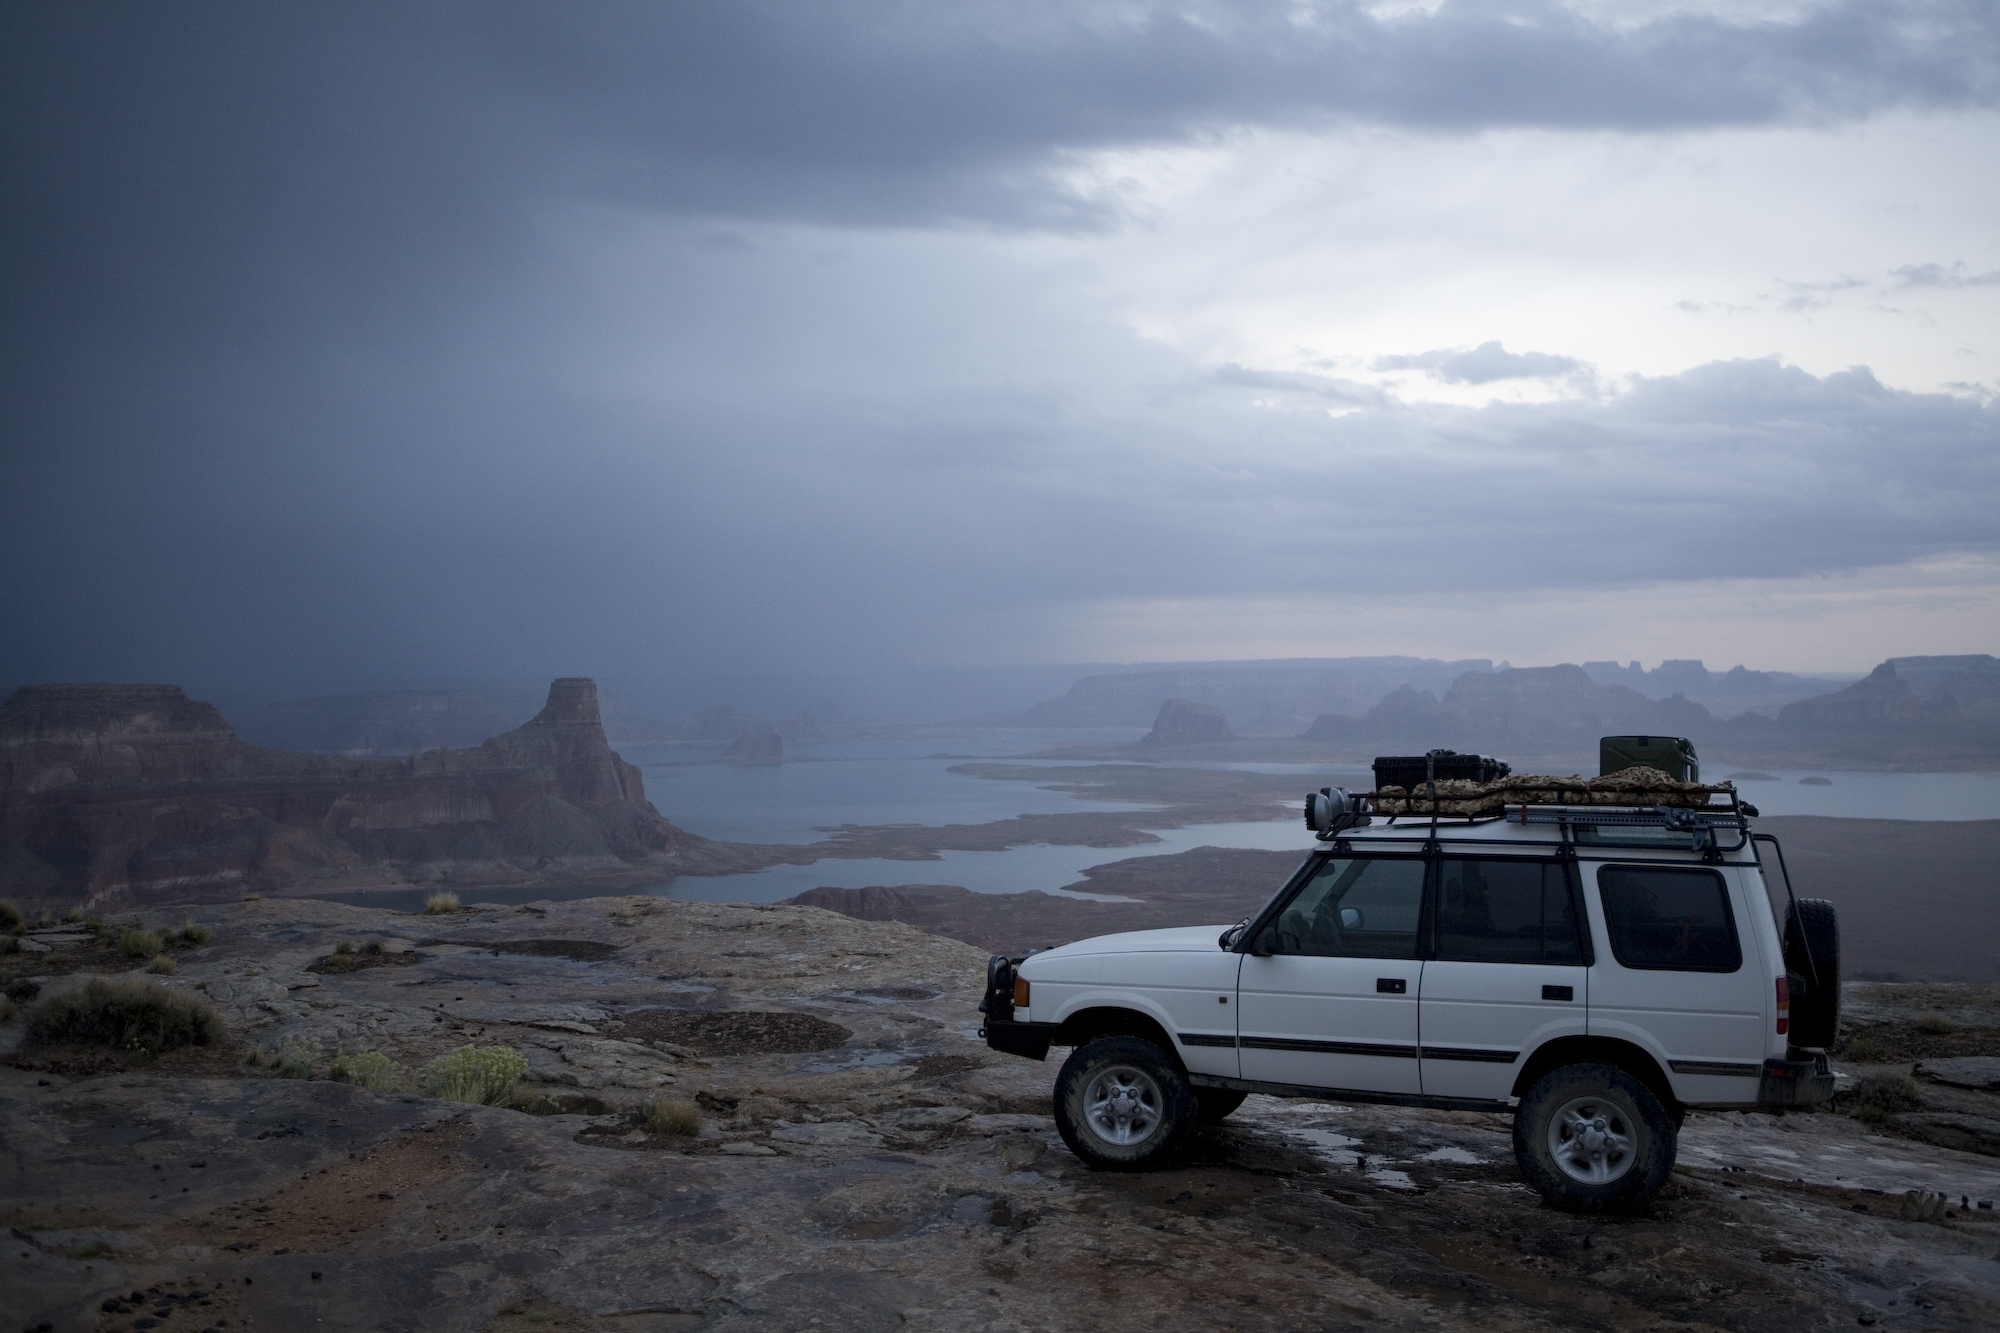 Land Rover / Overland Journal - Auto Commercial Photography